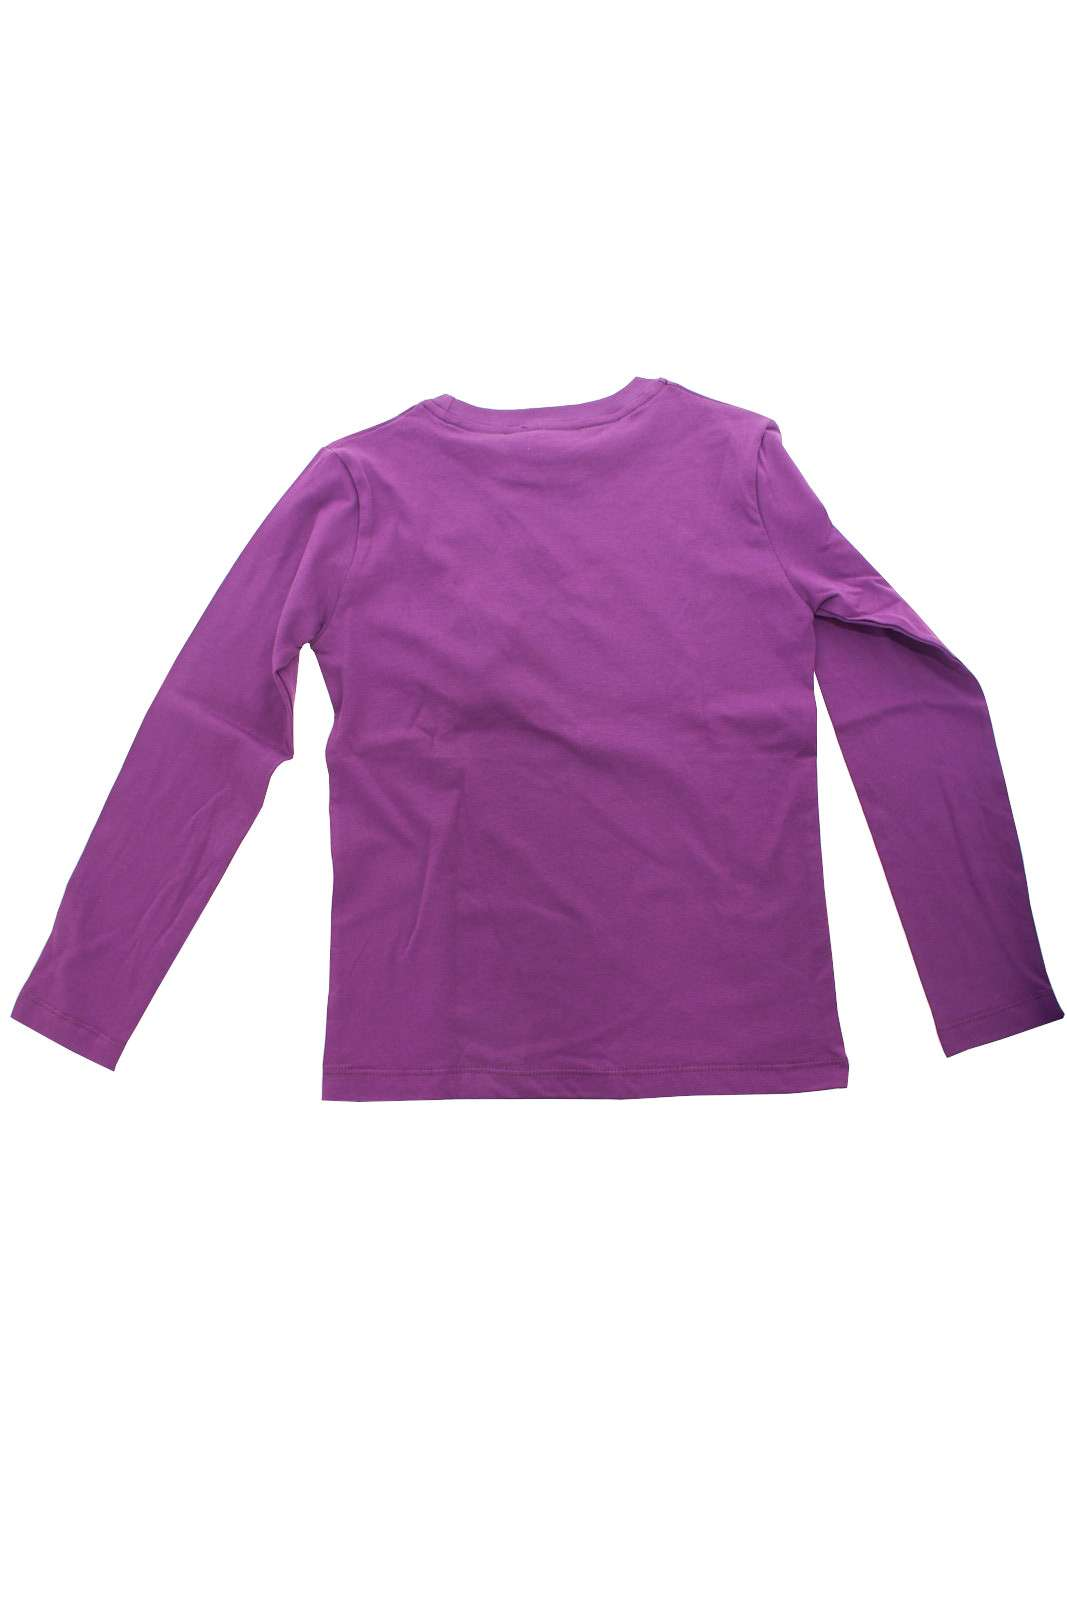 https://www.parmax.com/media/catalog/product/a/i/PE-outlet_parmax-maglia-bambino-021457-B.jpg